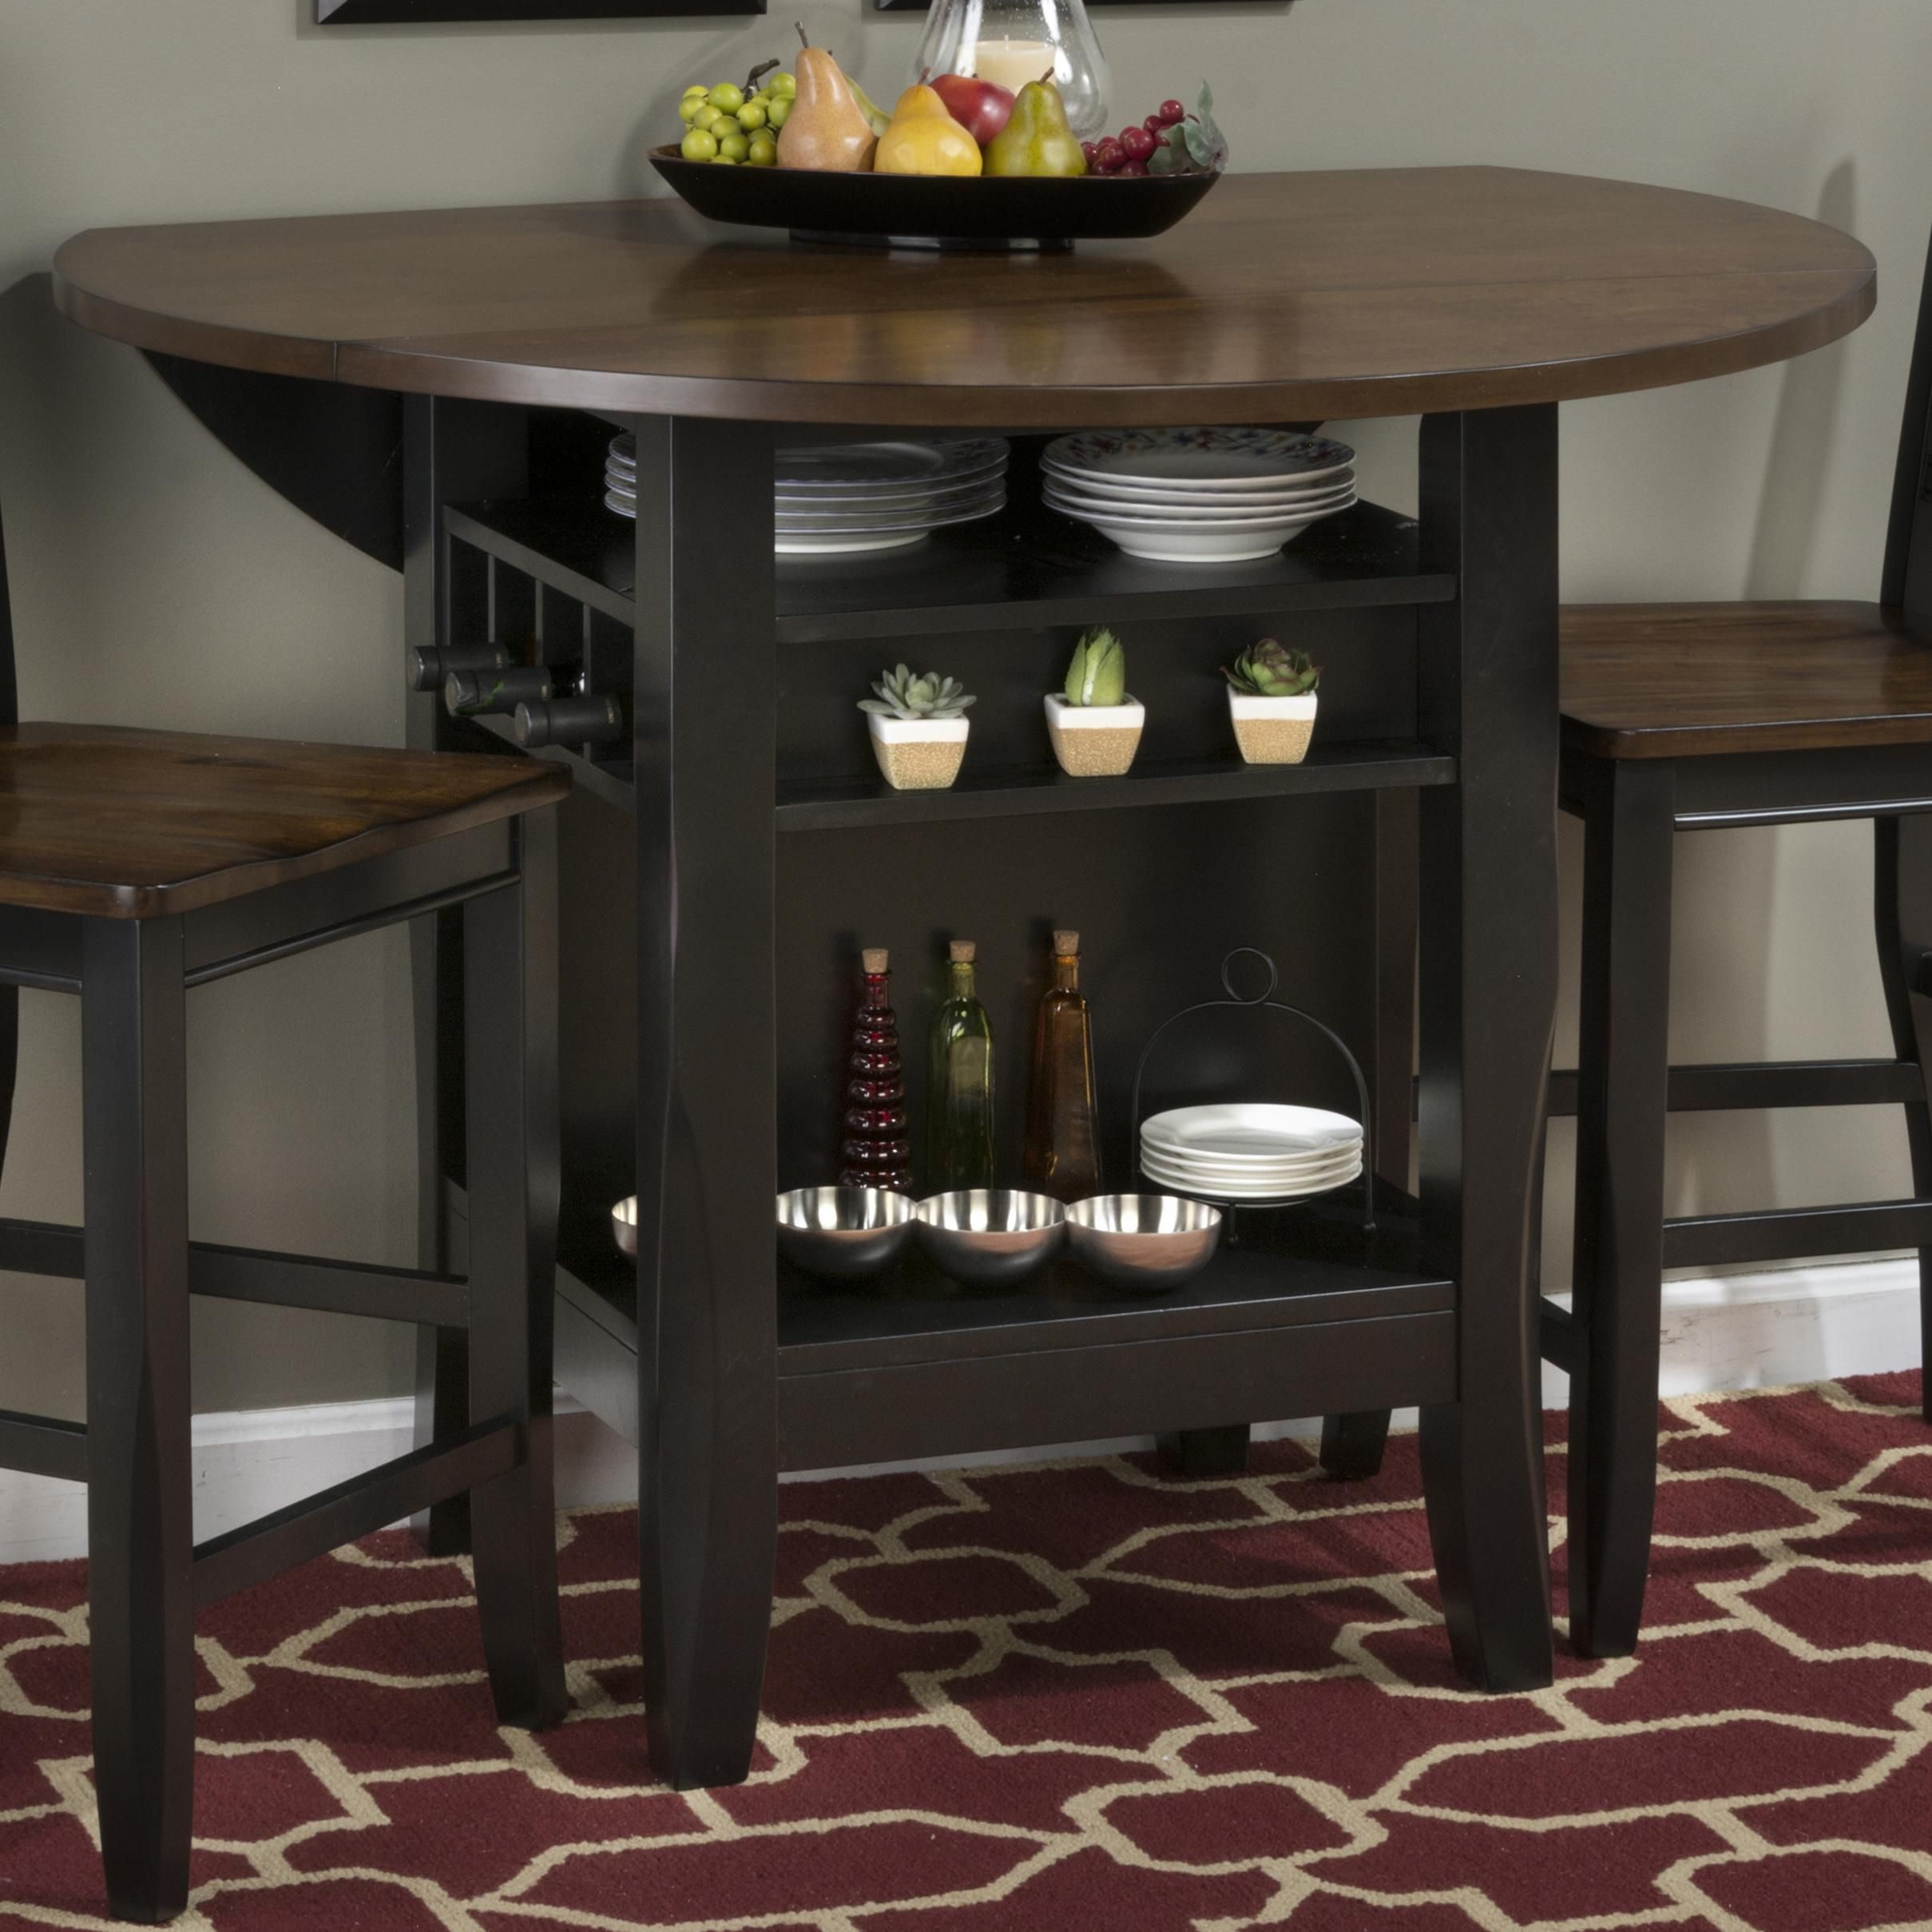 counter height kitchen tables refinishing oak cabinets jofran braden birch 48 round table with